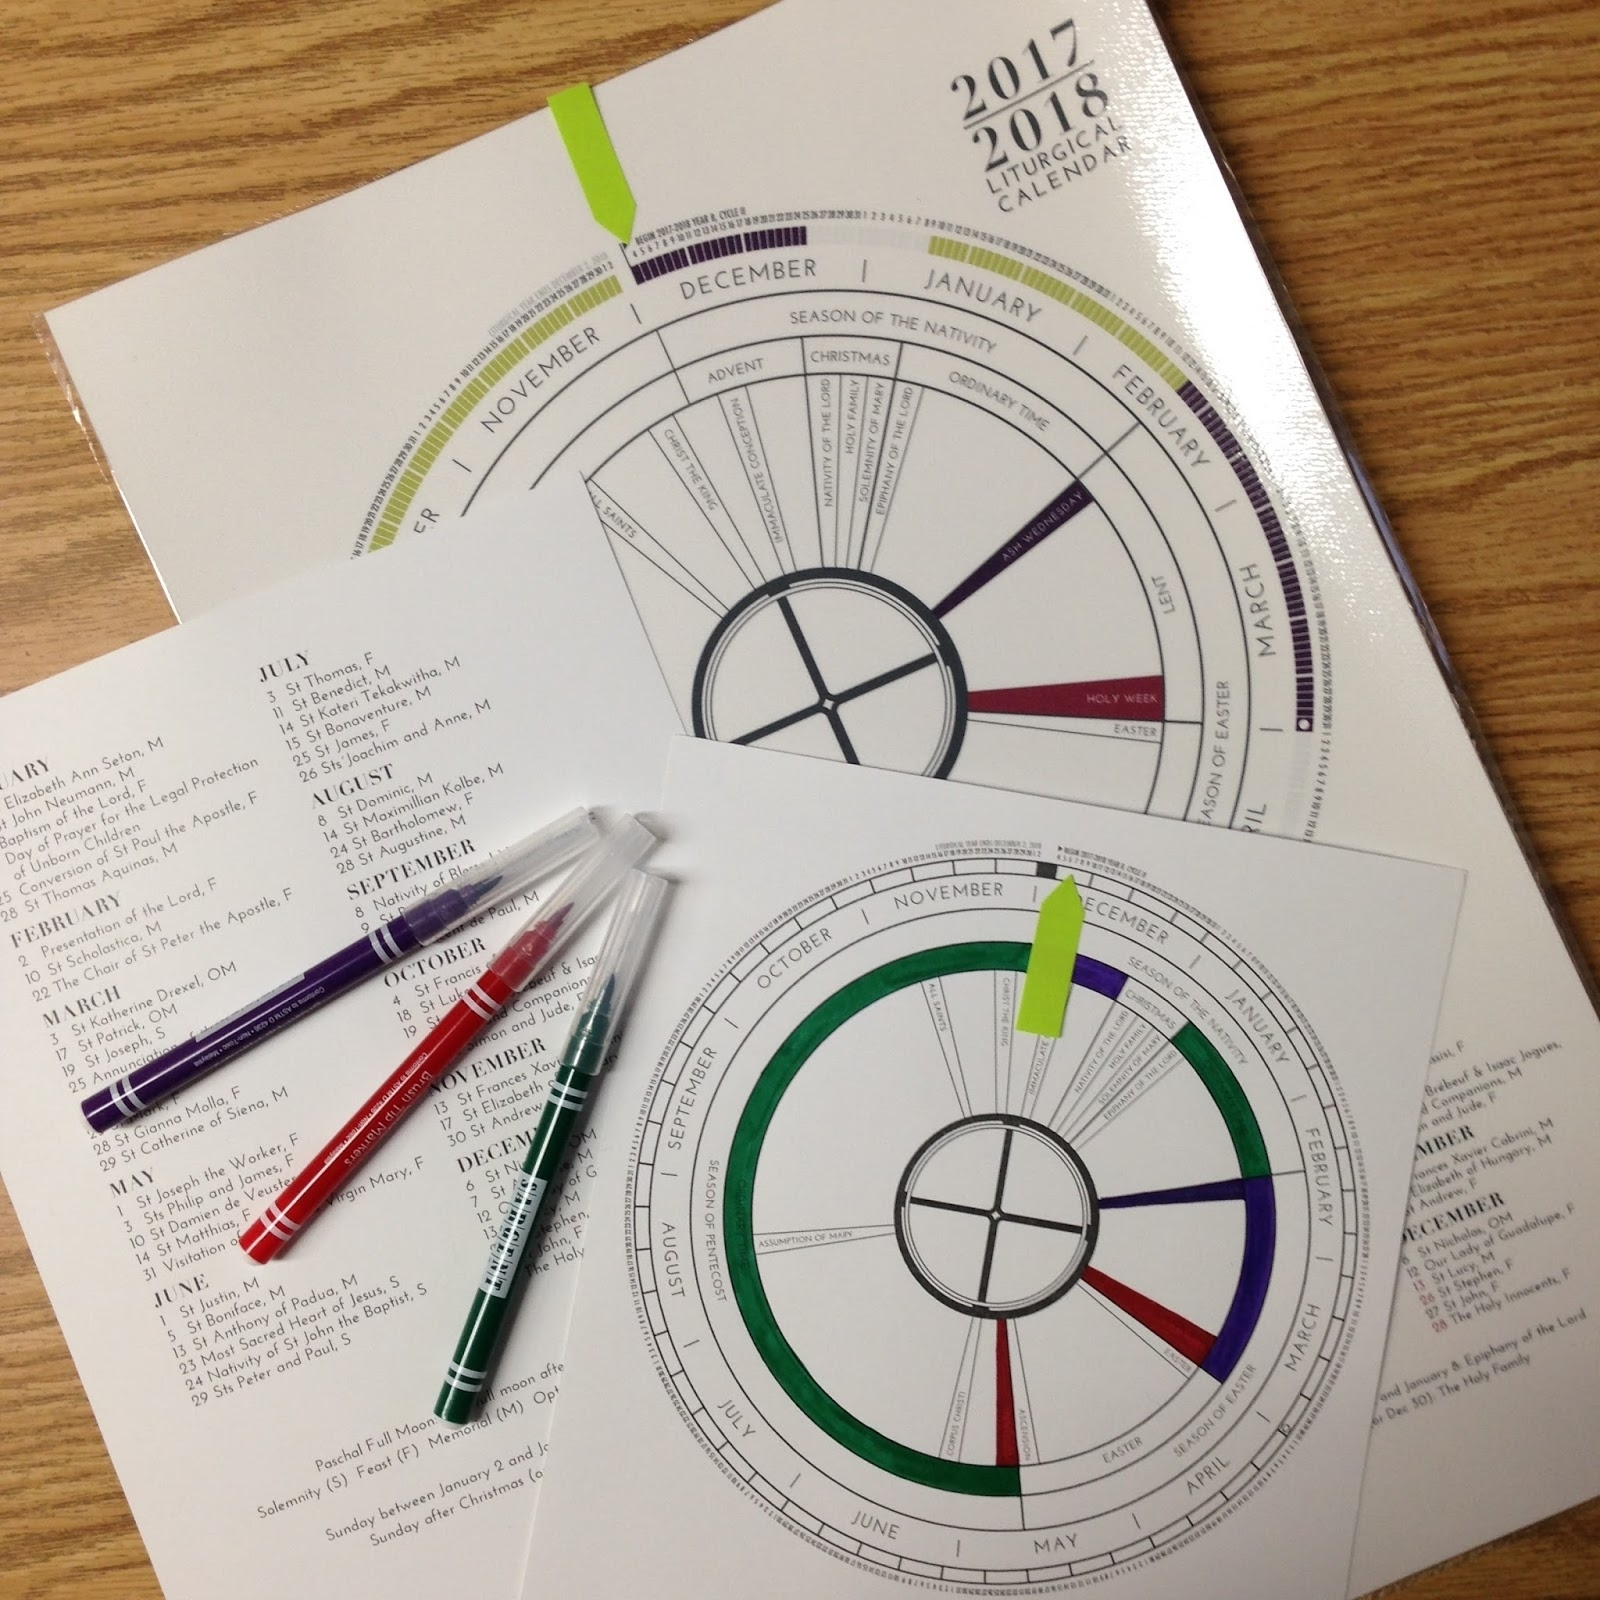 Look To Him And Be Radiant: Learning About The Liturgical throughout Liturgical Year Printable Calendars Catholic